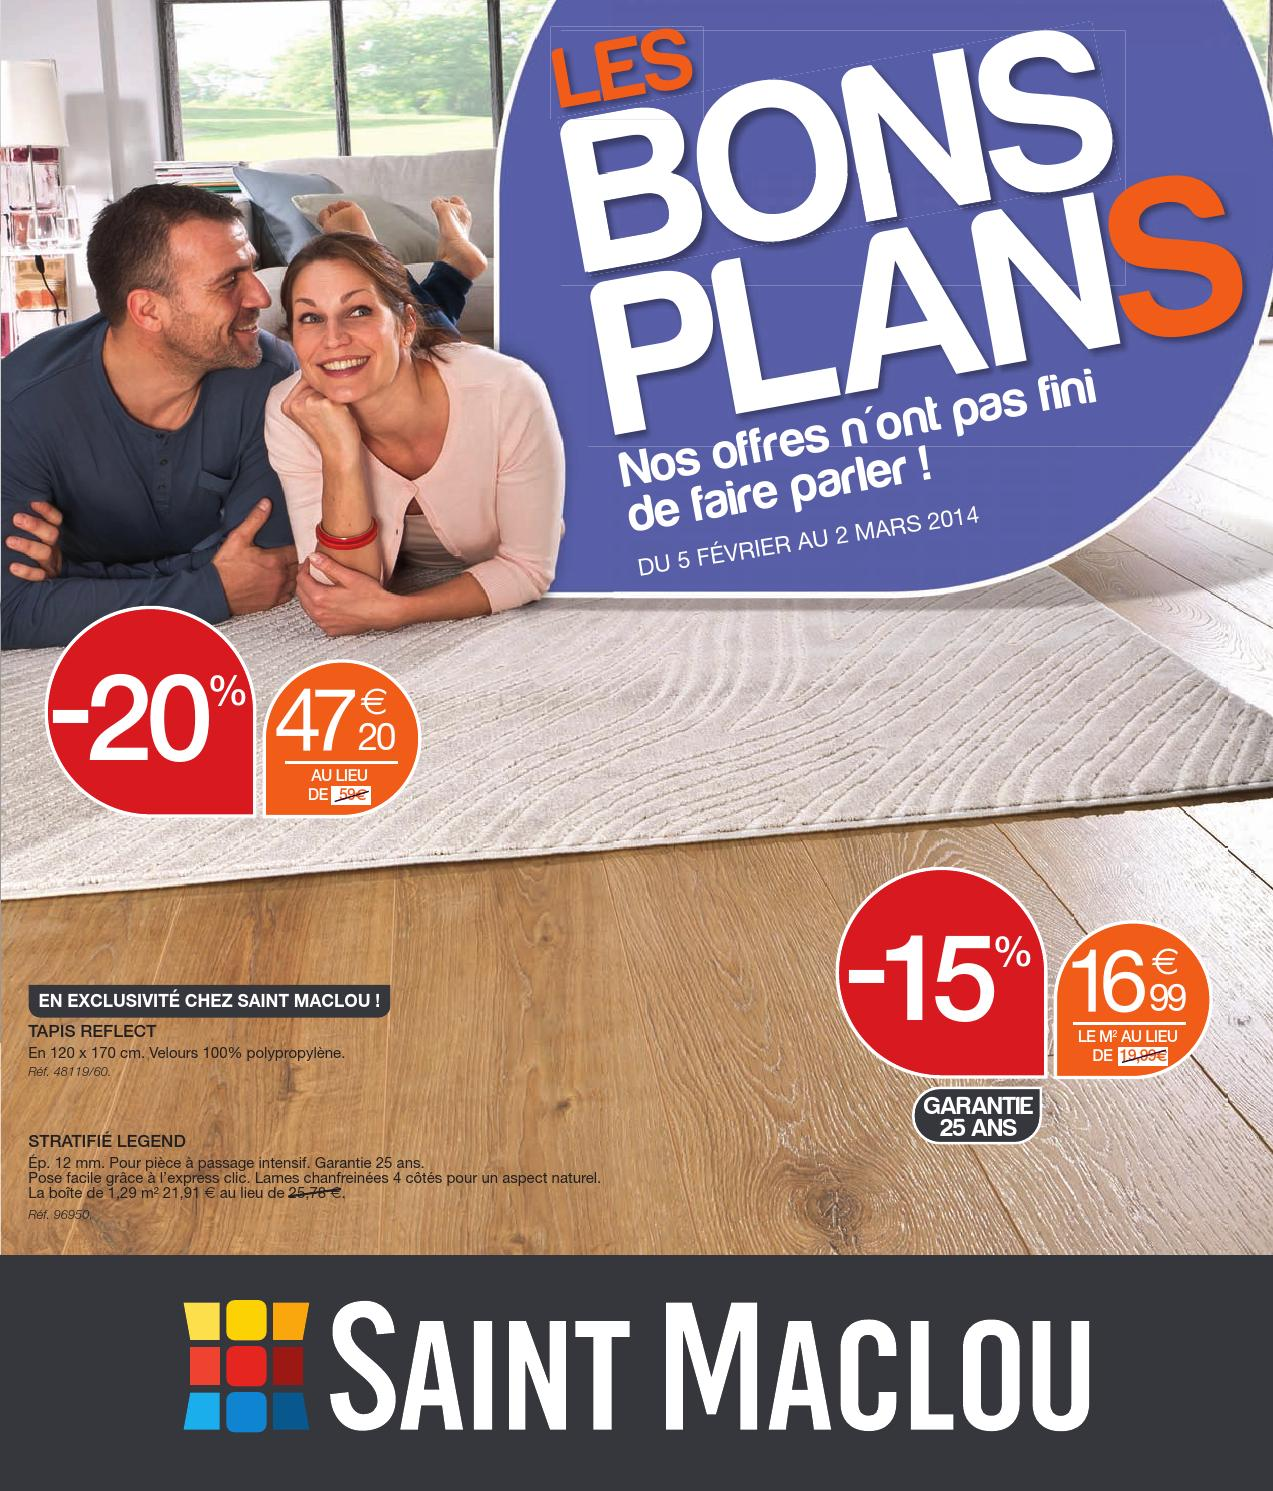 Dalles Clipsables Saint Maclou catalogue saint maclou - 5.02-2.03.2013joe monroe - issuu